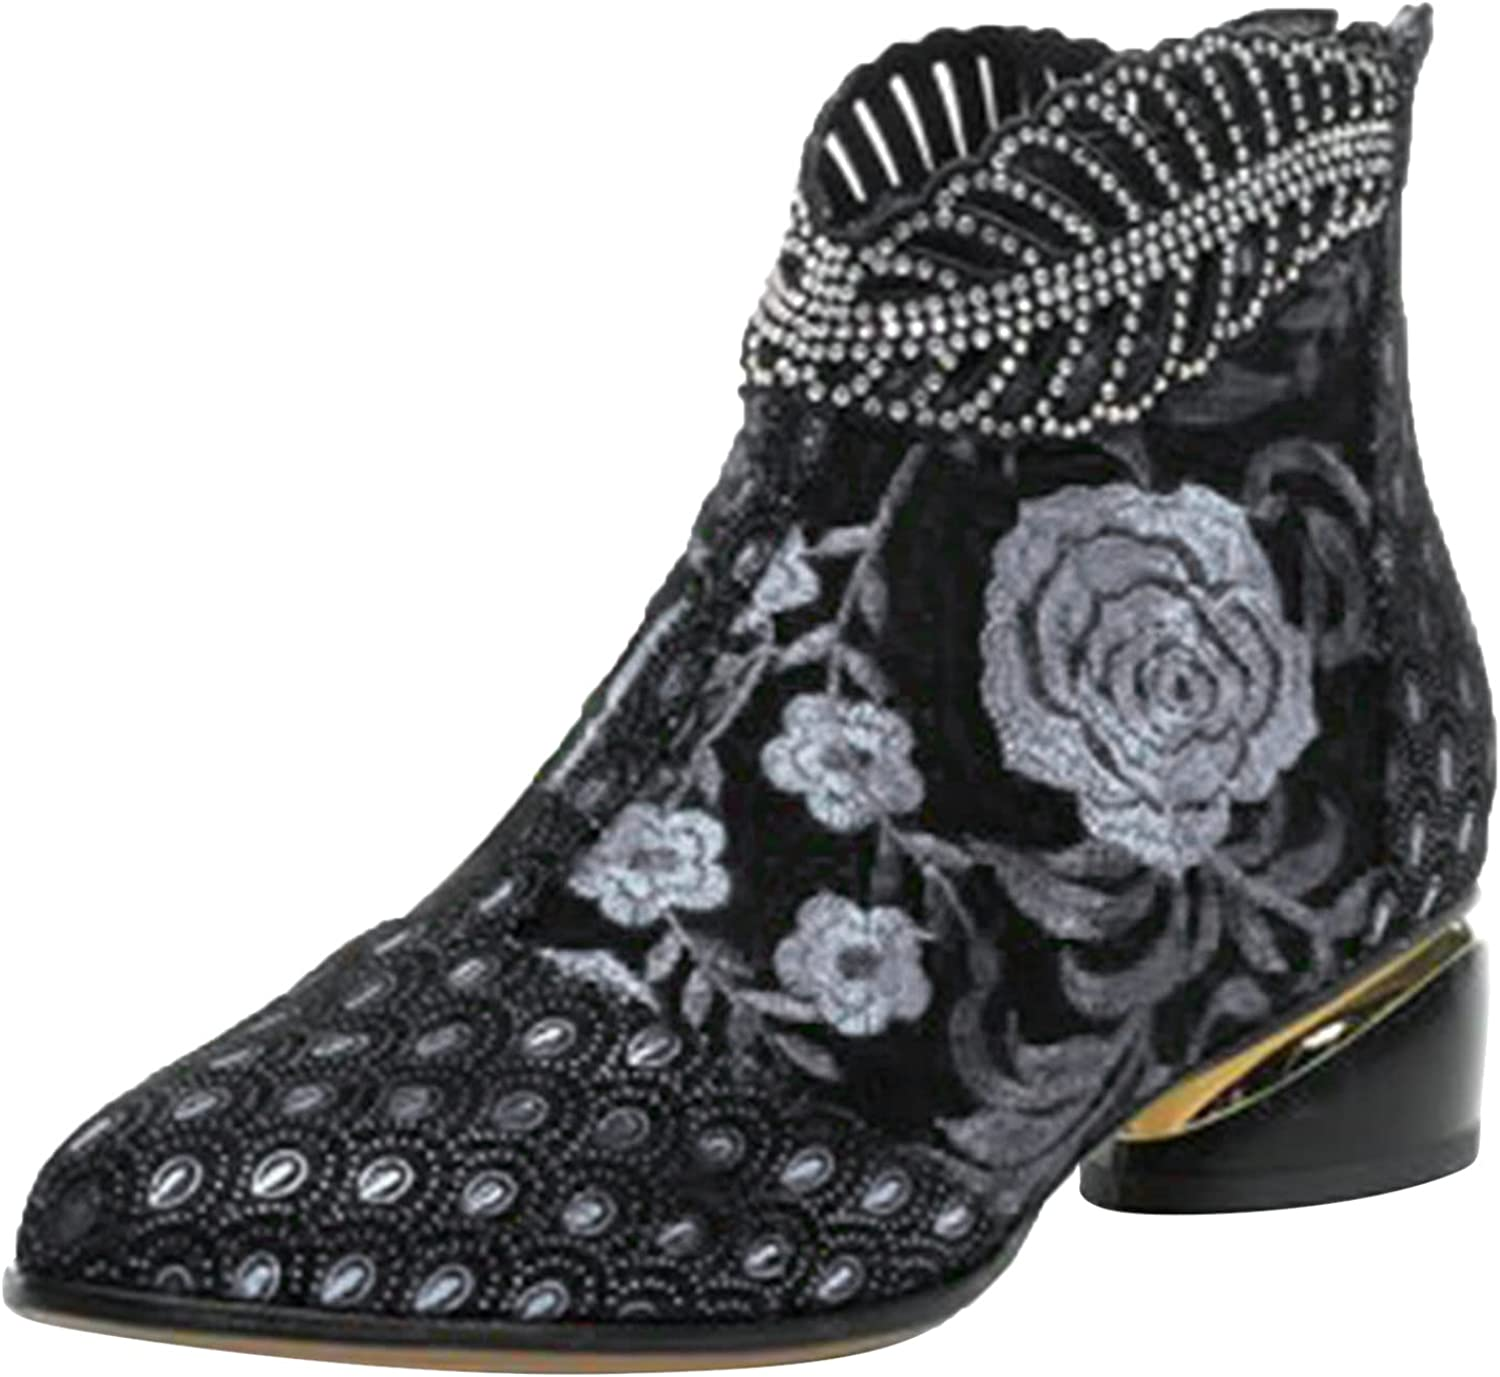 Women's Ankle Boot Vintage Embroidery Pointed Toe Zipper High Heel Short Naked Boots Shoes